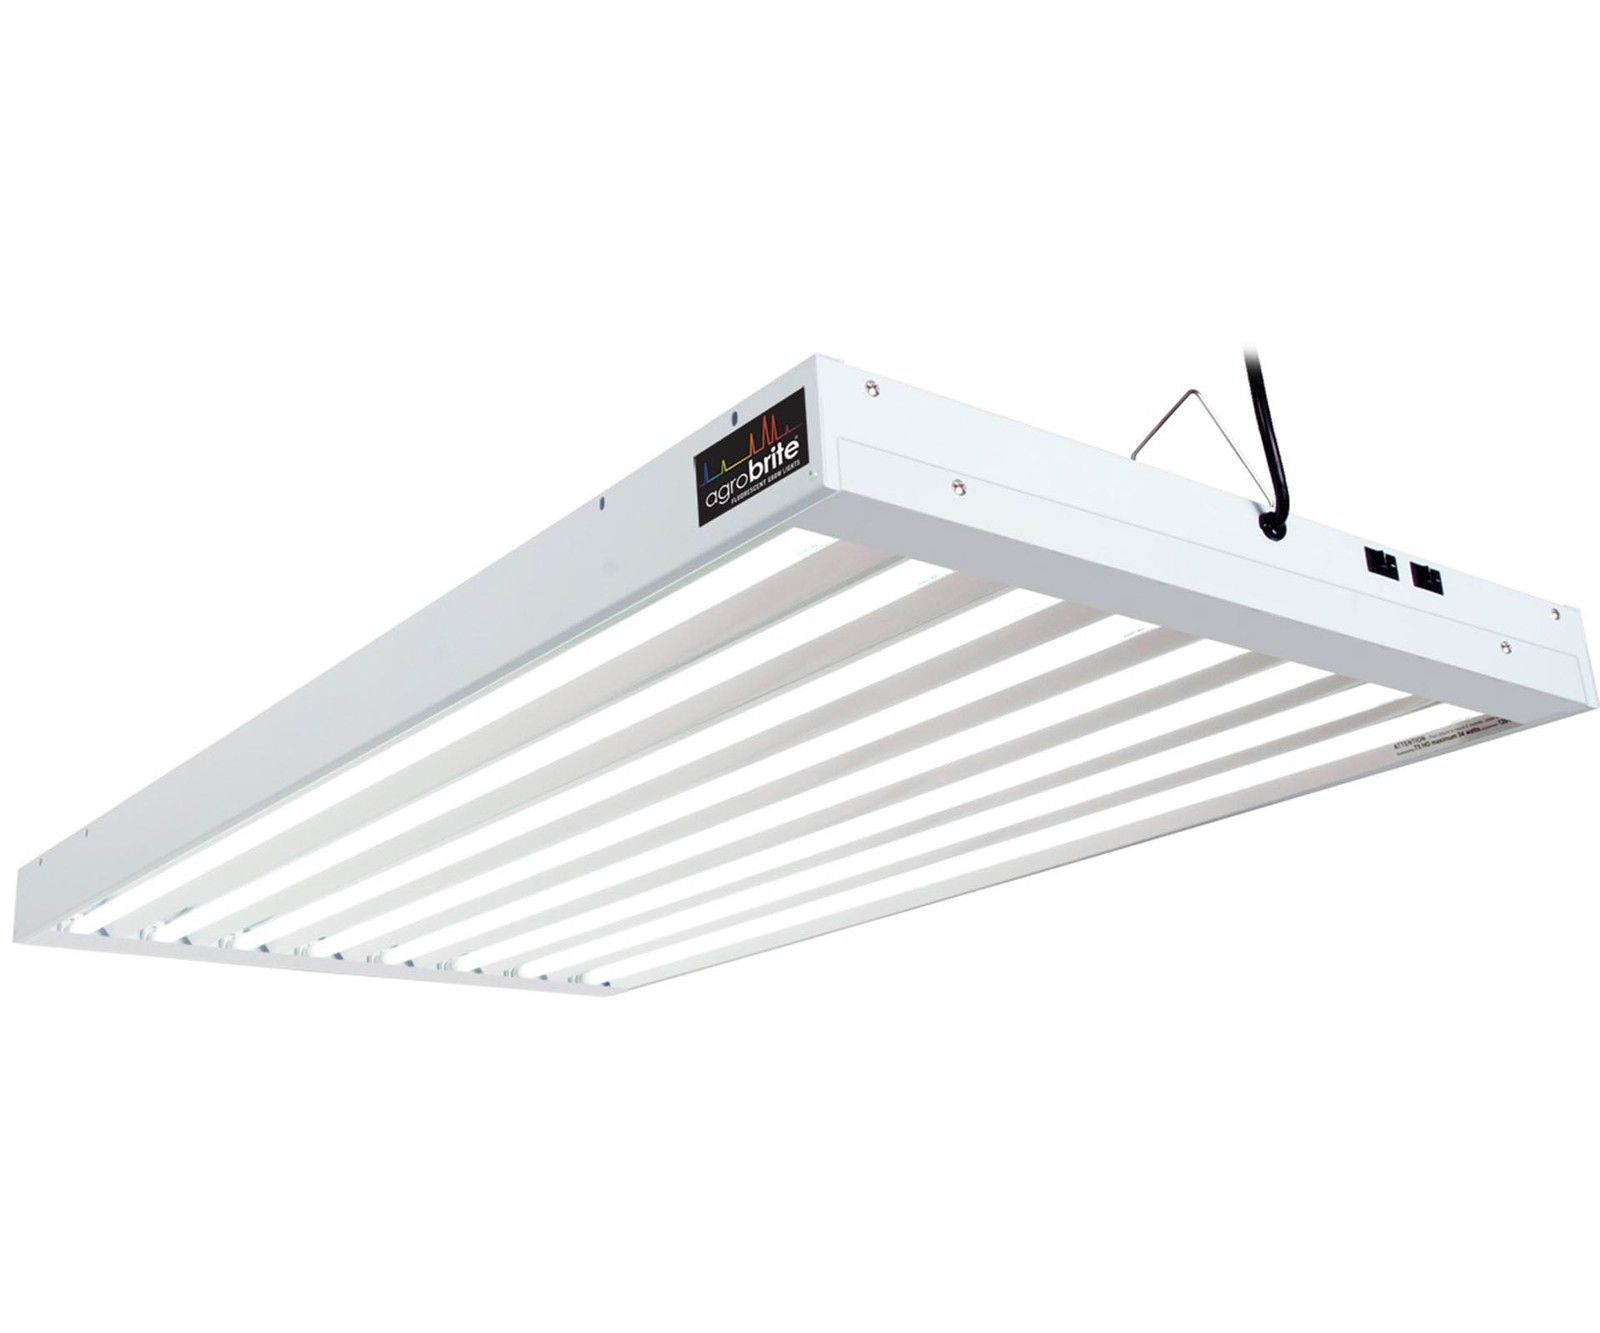 Agrobrite T5 432w 4 8 Tube Grow Light Fixture W Fluorescent Lamps Flt48 Grow Light Fixture Indoor Grow Lights Grow Light Fixtures